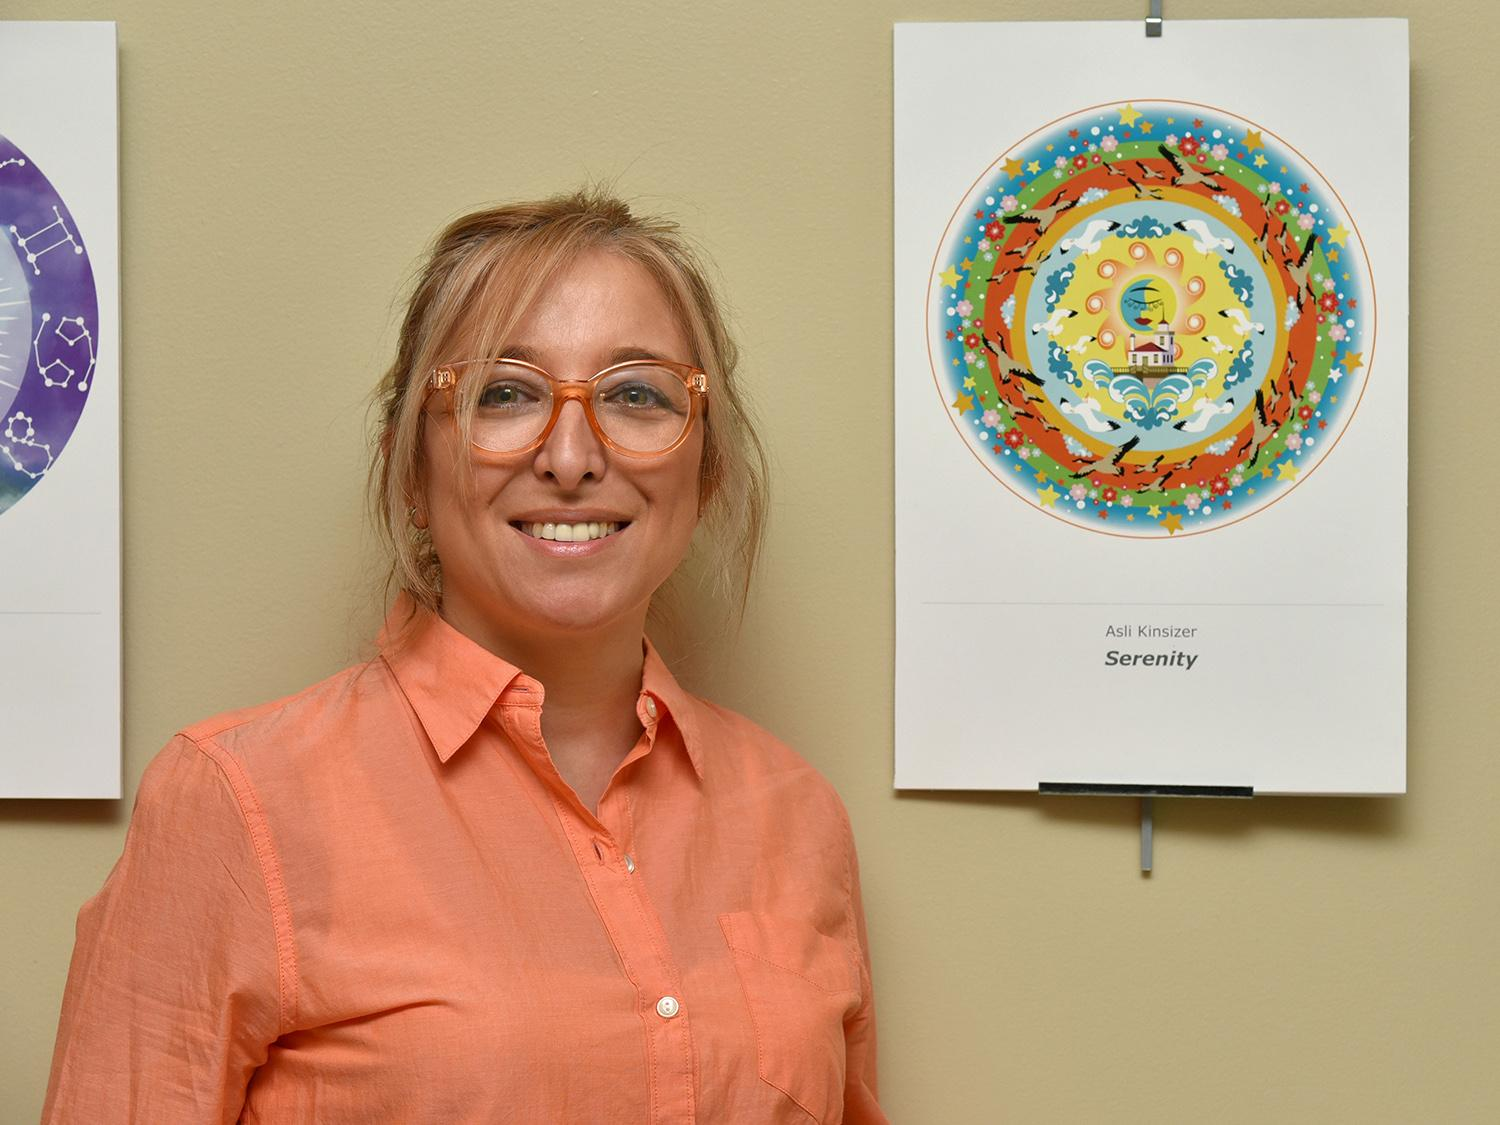 Asli Kinsizer with her mandala model